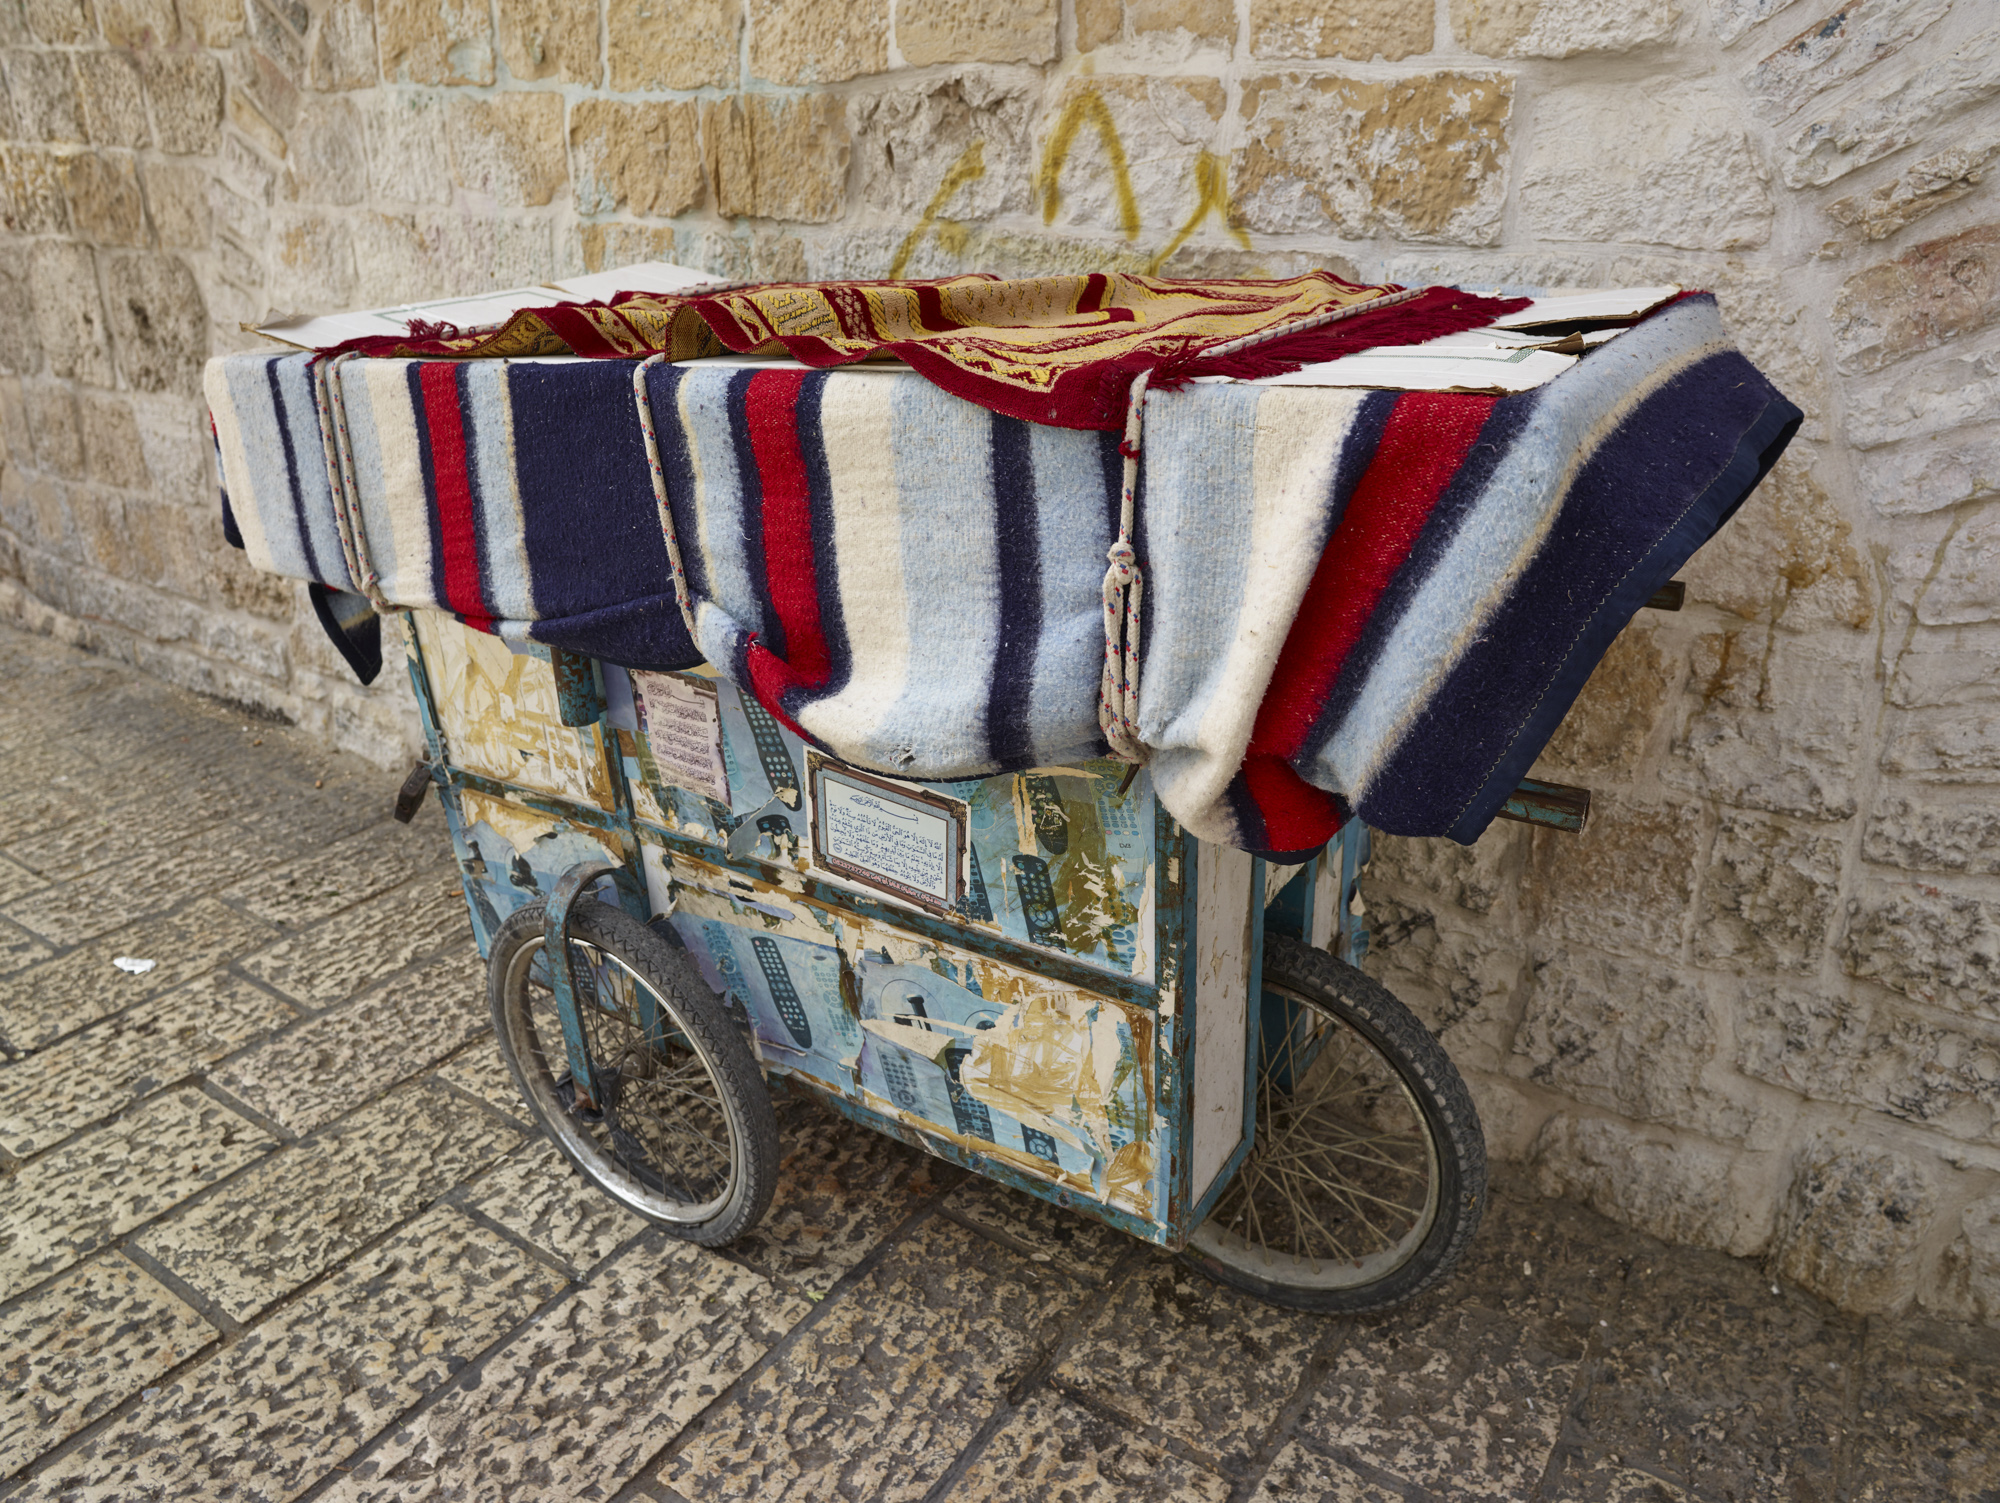 Cart - Jerusalem, April 2017